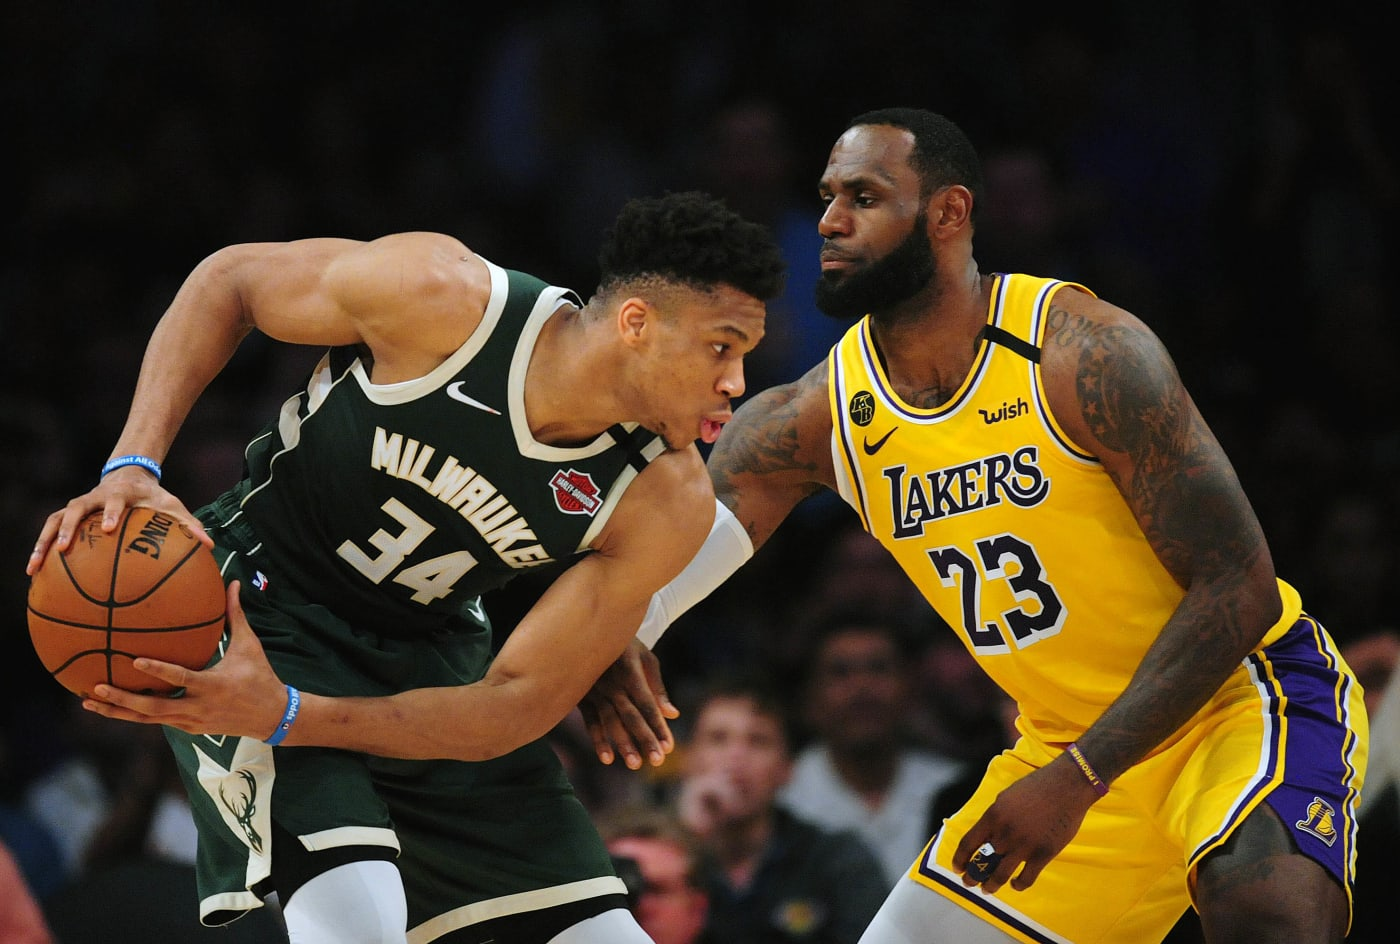 Giannis Antetokounmpo LeBron James Los Angeles Bucks Lakers 2020